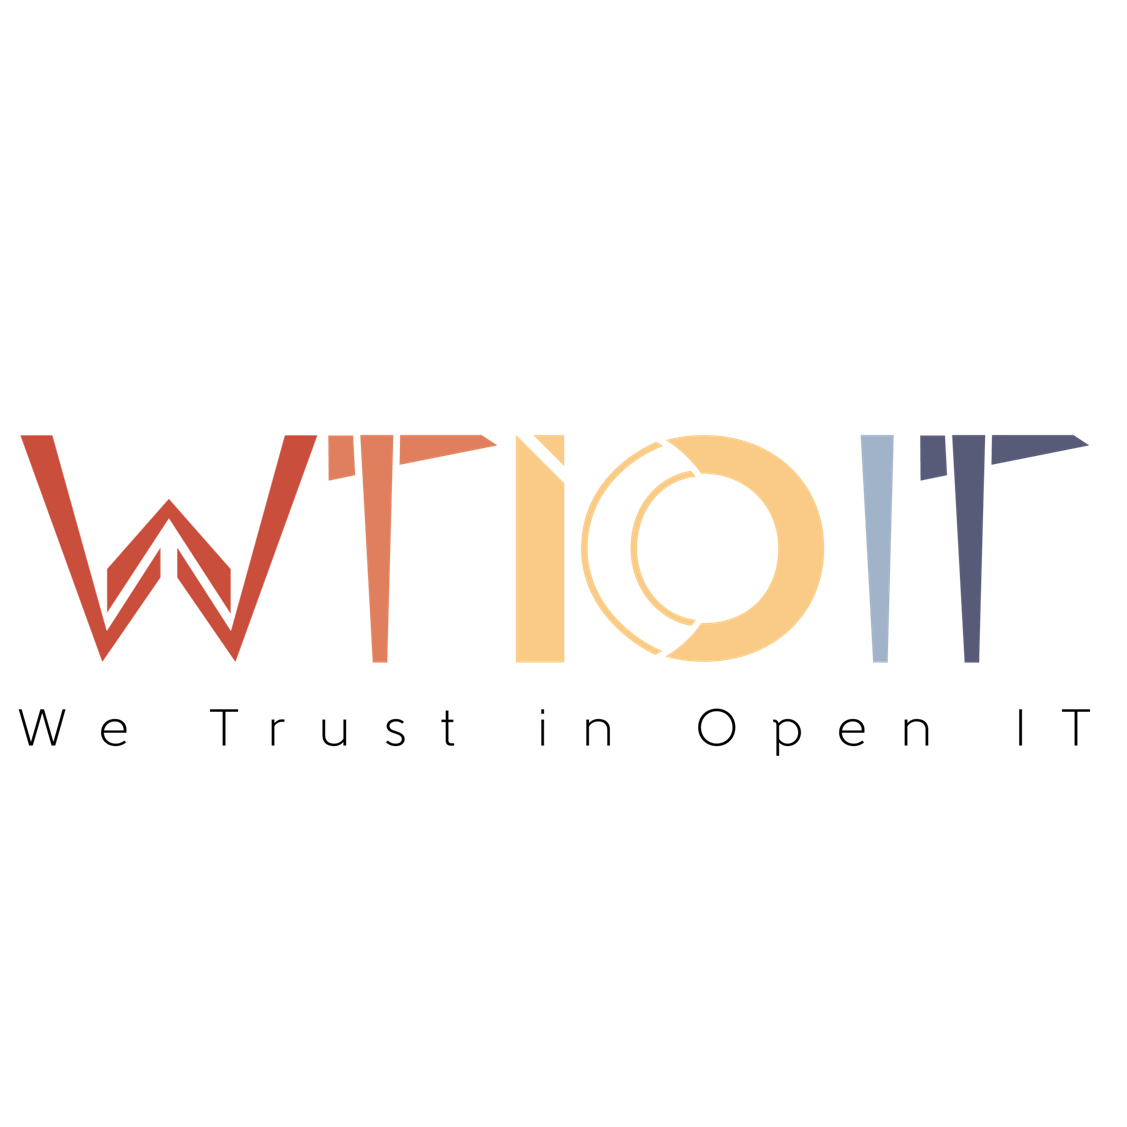 WT-IO-IT GmbH